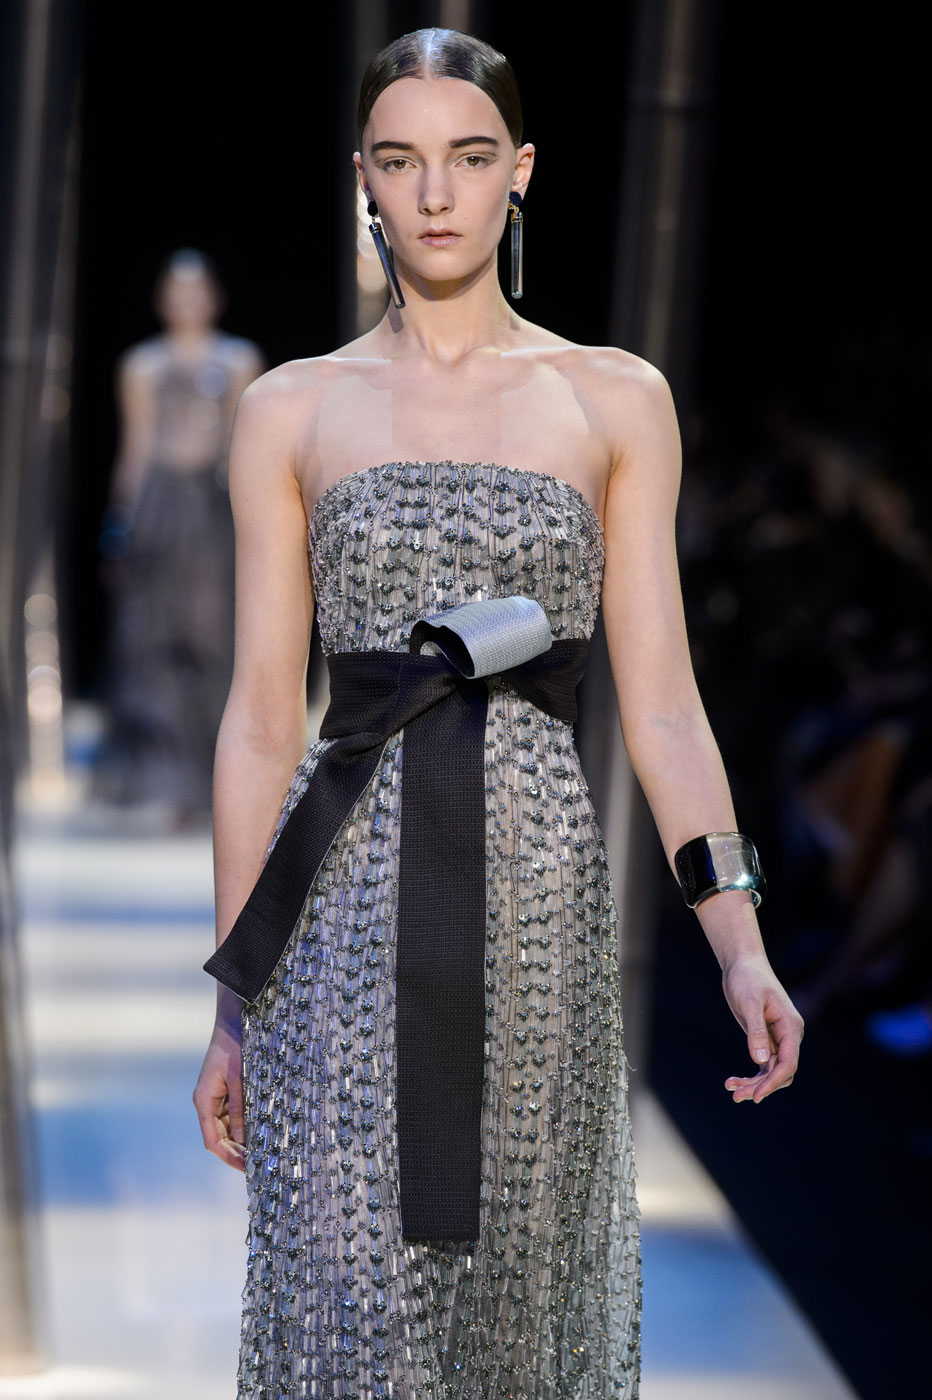 Giorgio-armani-Prive-fashion-runway-show-haute-couture-paris-spring-2015-the-impression-116